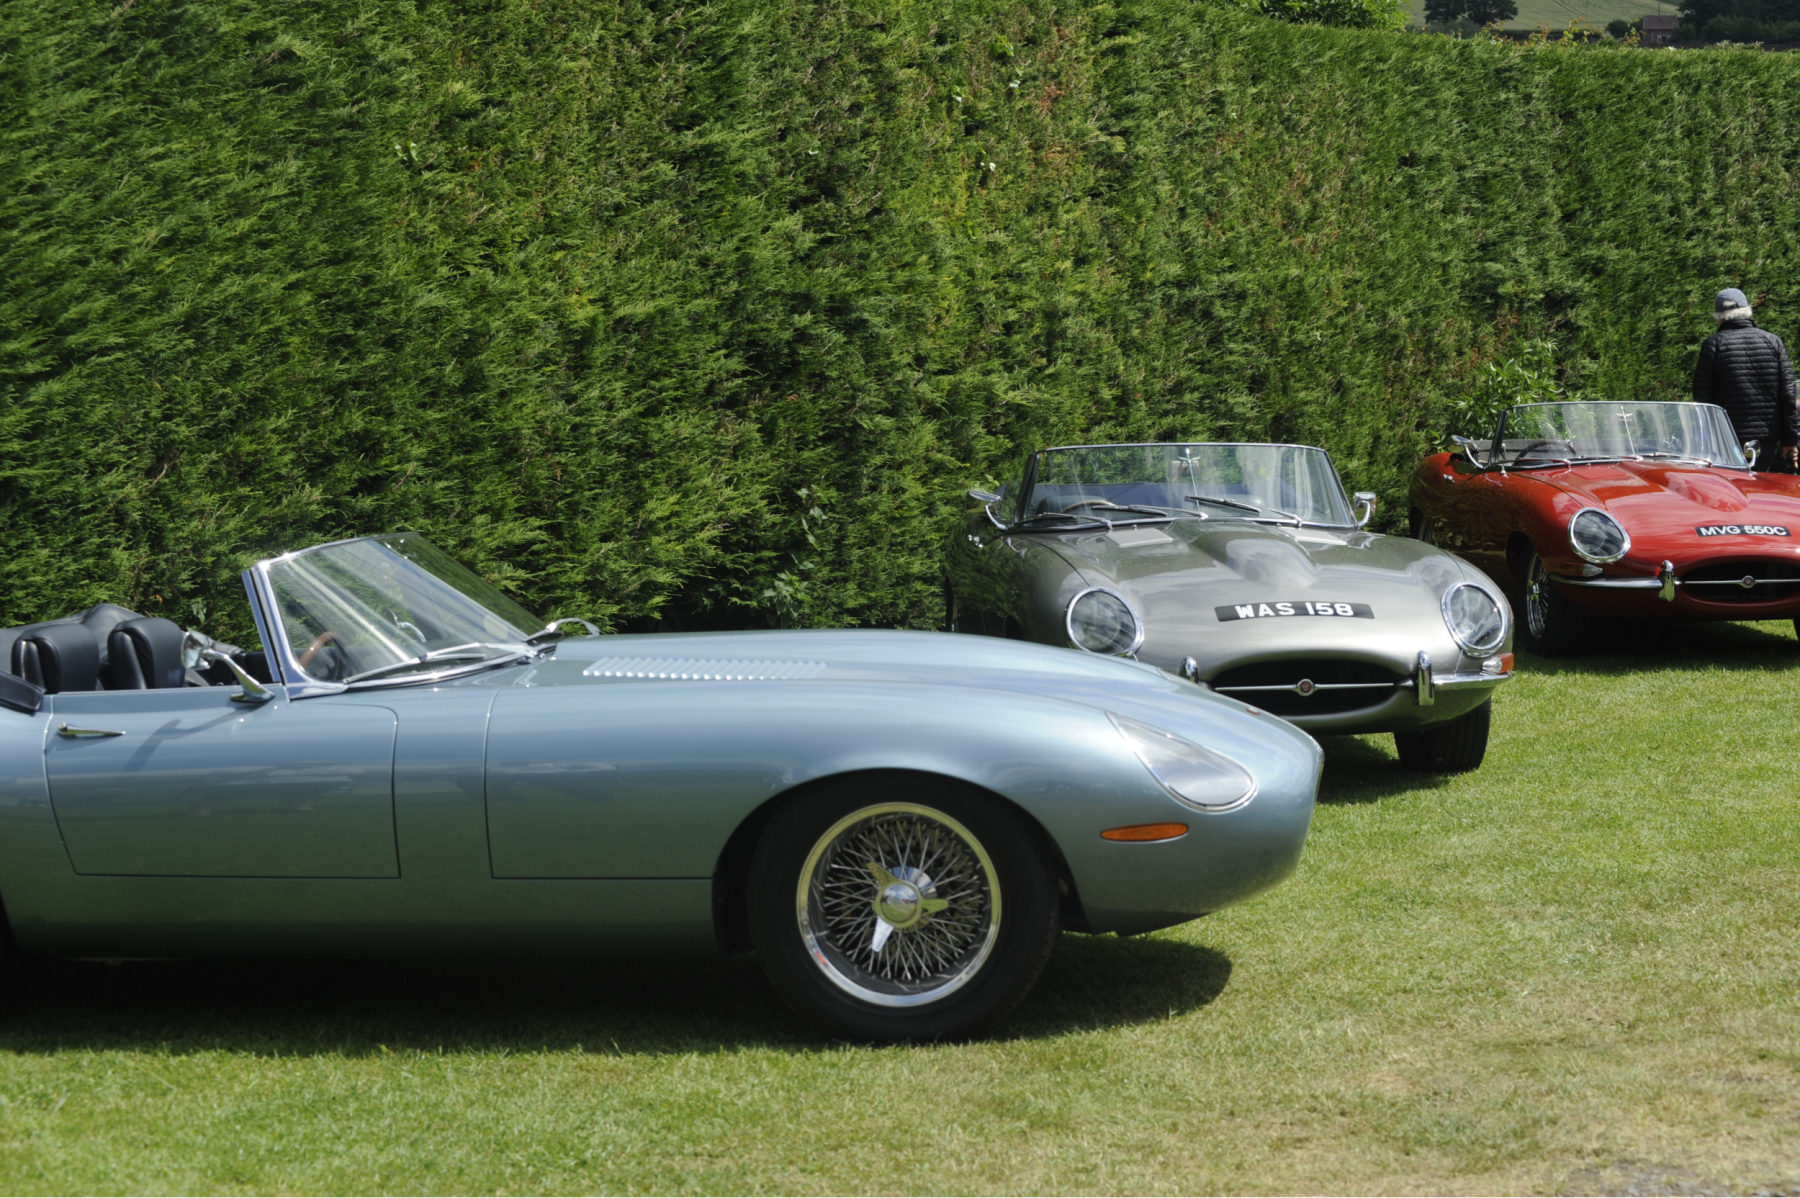 E-type-60-Saturday-photo-by-Abigail-Humphries-492